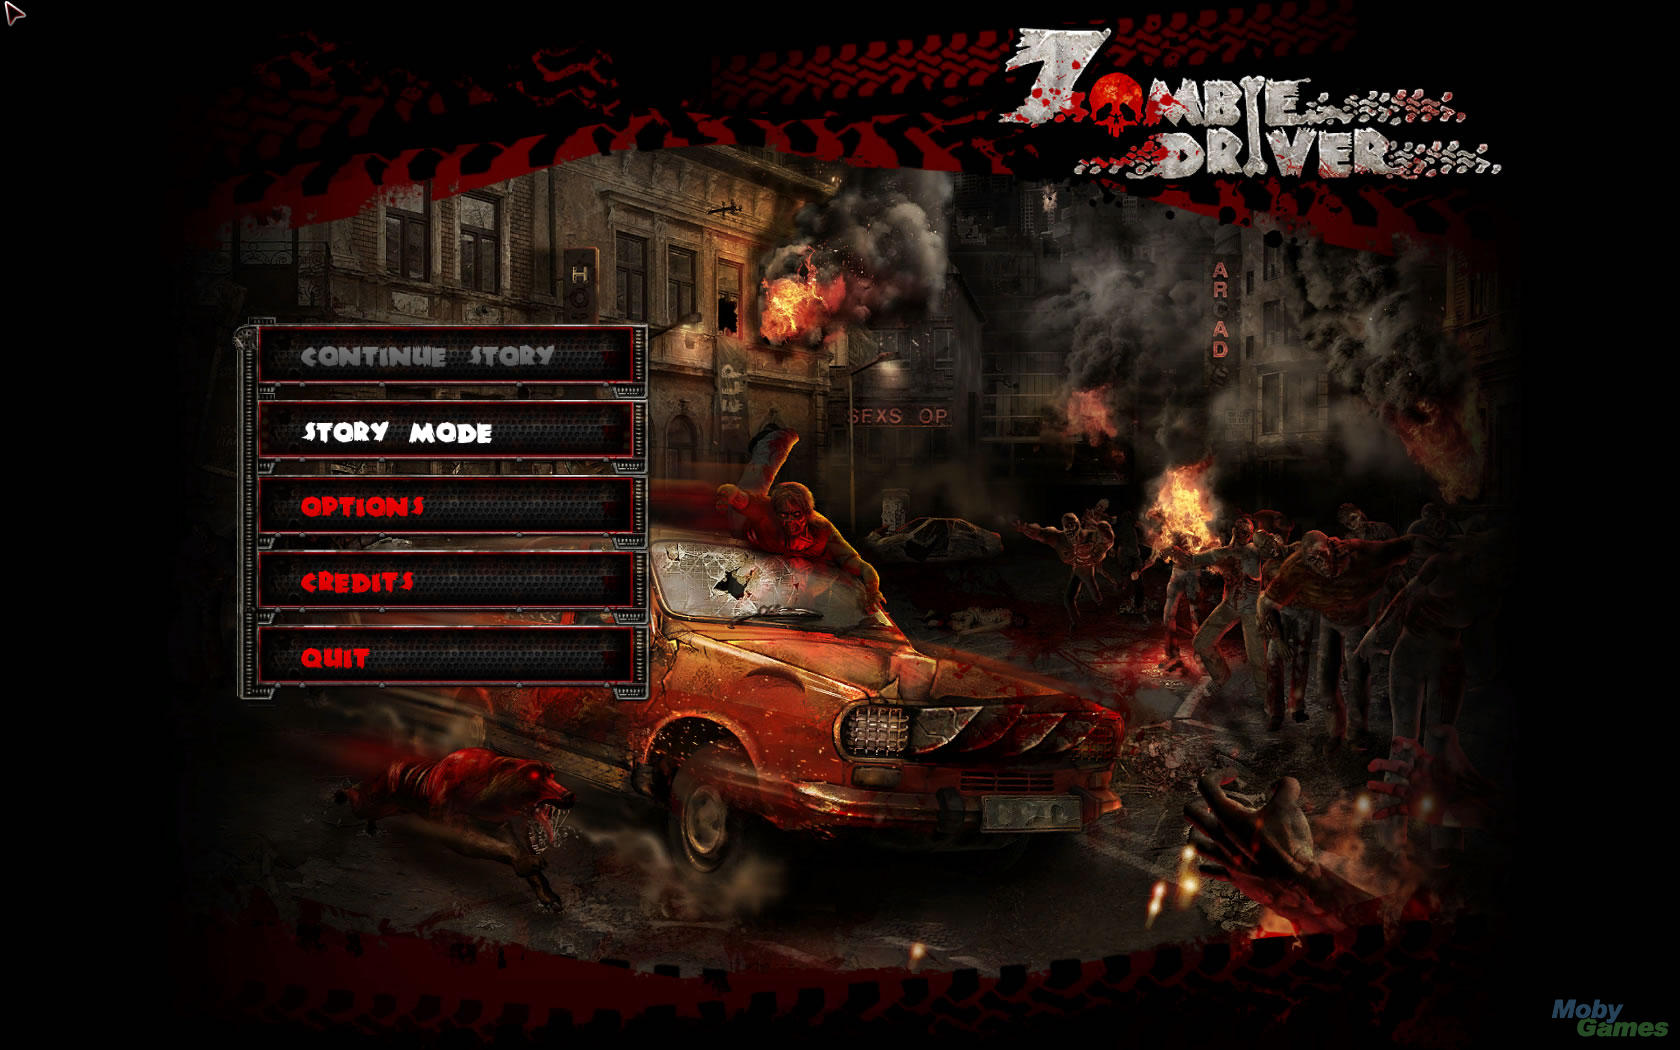 401059-zombie-driver-windows-screenshot-main-menus